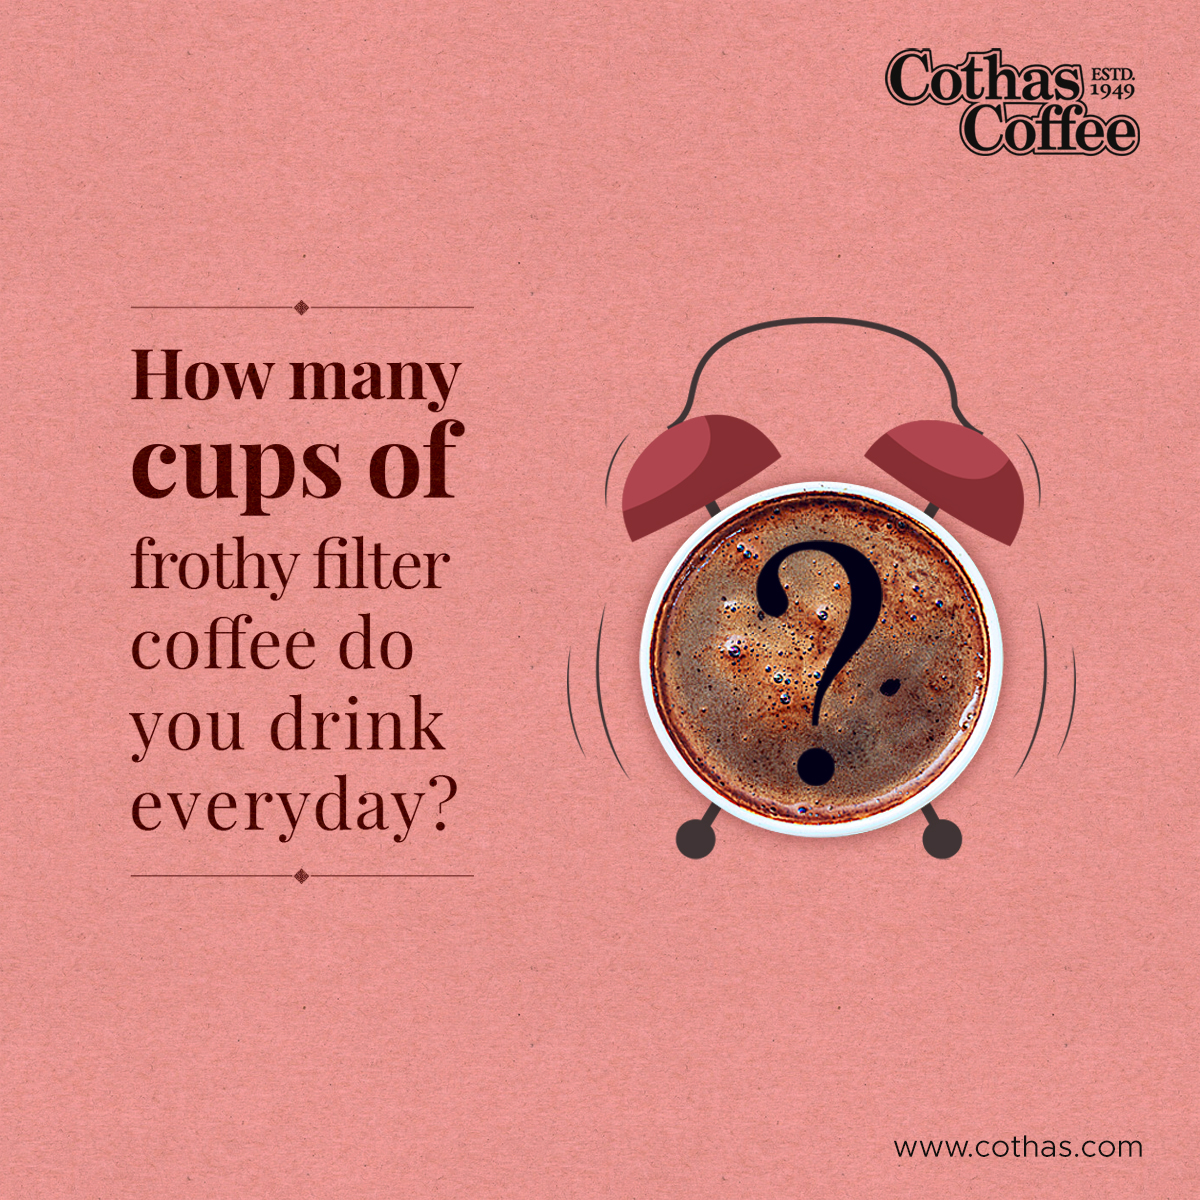 Show us you are a Coffee Addict! How many cups of filter coffee do you consume everyday? Add your comments below. Discover your coffee pals!  #Cothas #CothasCoffee #RealTasteOfCoffee #SouthIndianCoffee #CoffeeLovers #CoffeeAddicts #FilterCOffee #Coffeeholic #CoffeeCup #CoffeeMugpic.twitter.com/78NM2ccPbf